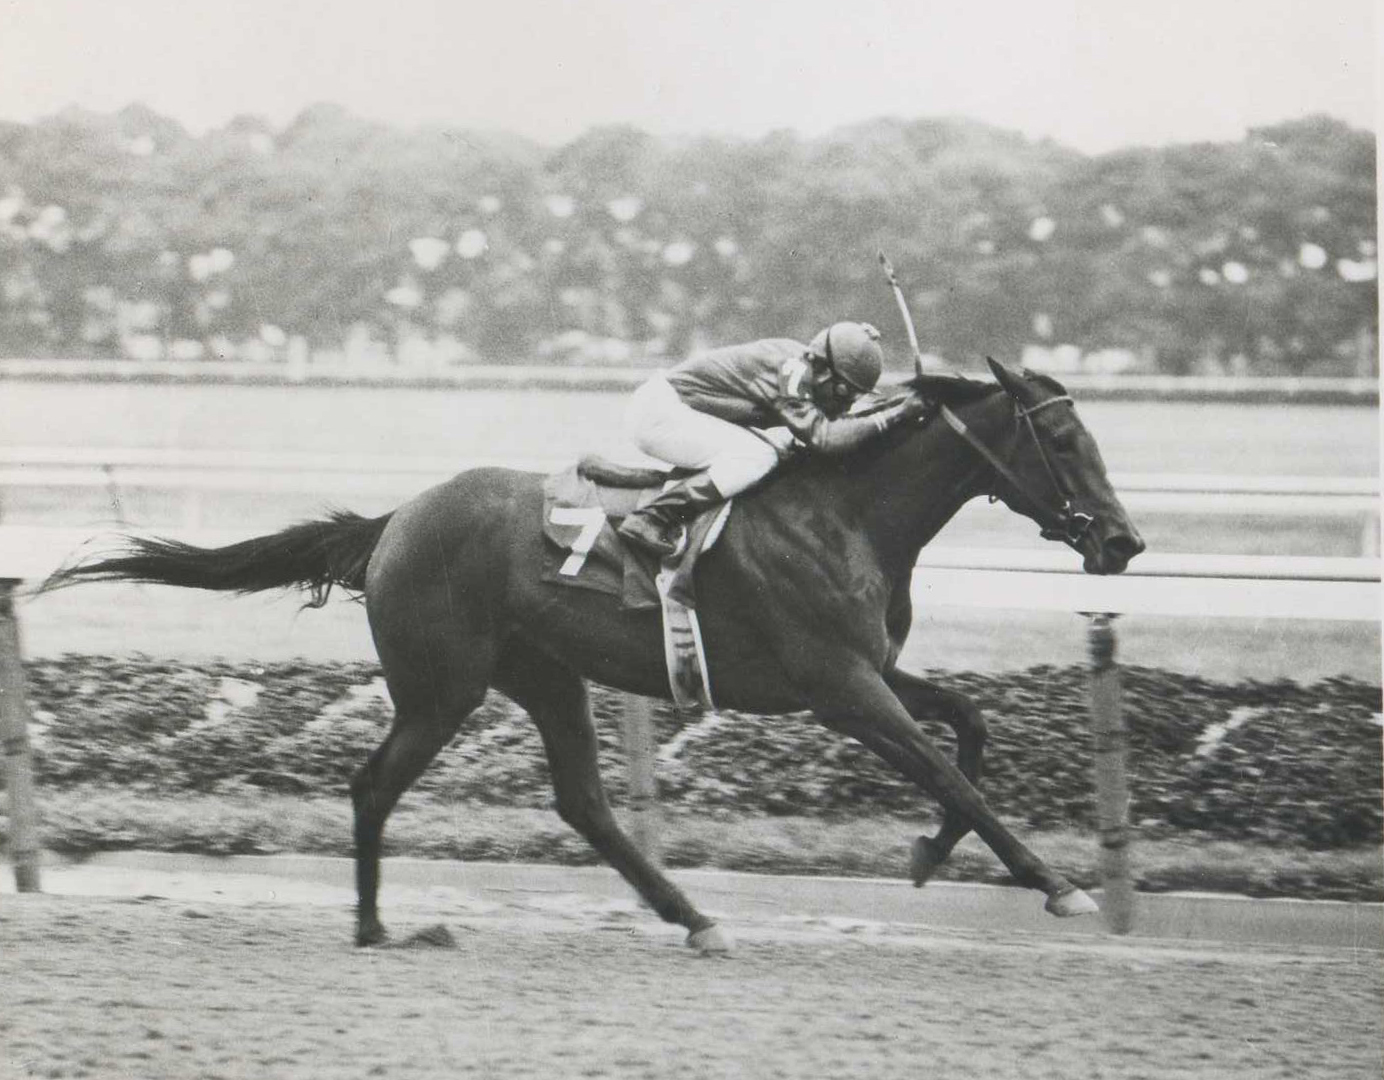 Davona Dale with Jorge Velasquez up in 1979 (NYRA/Photo Communcations /Museum Collection)